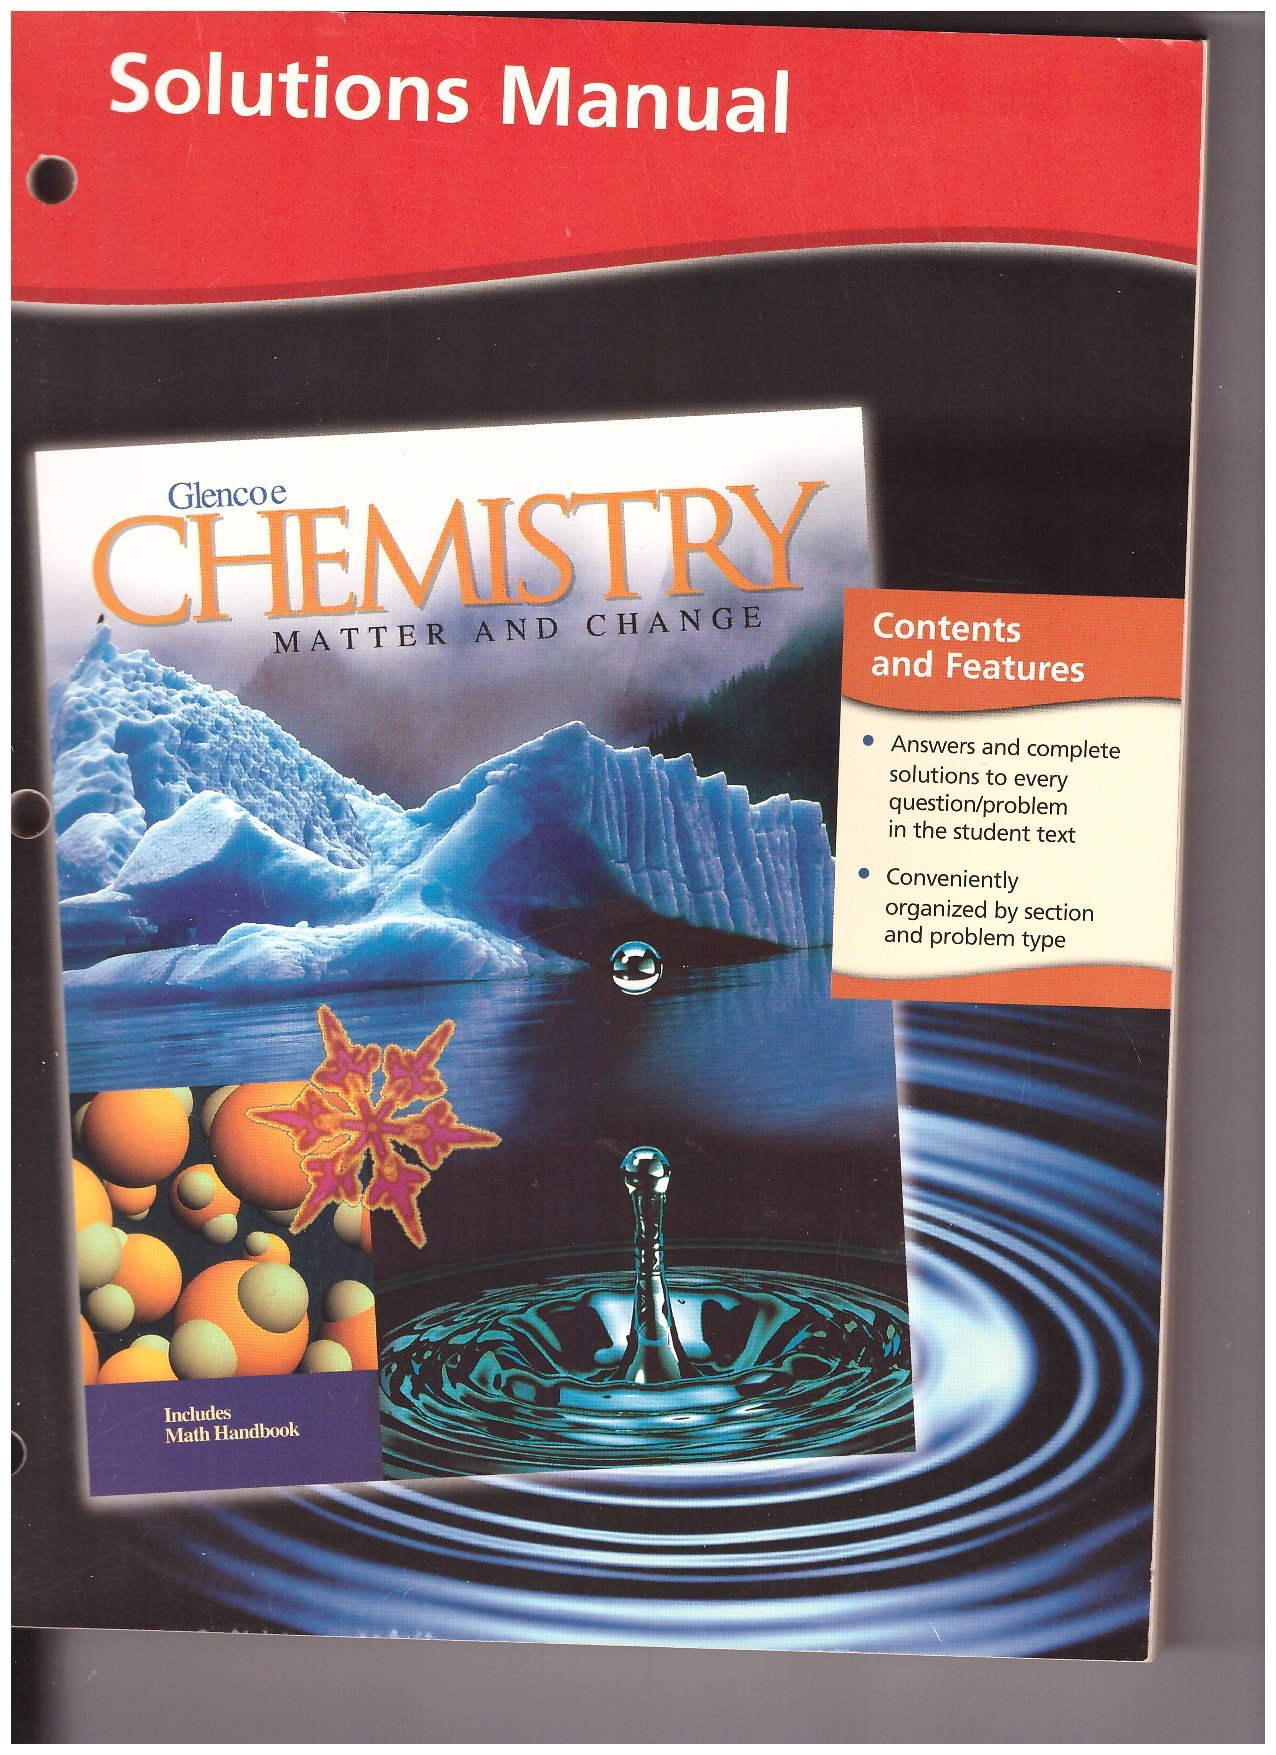 Chemistry : Matter and Change, Solutions Manual: McGraw-Hill:  9780078245374: Amazon.com: Books